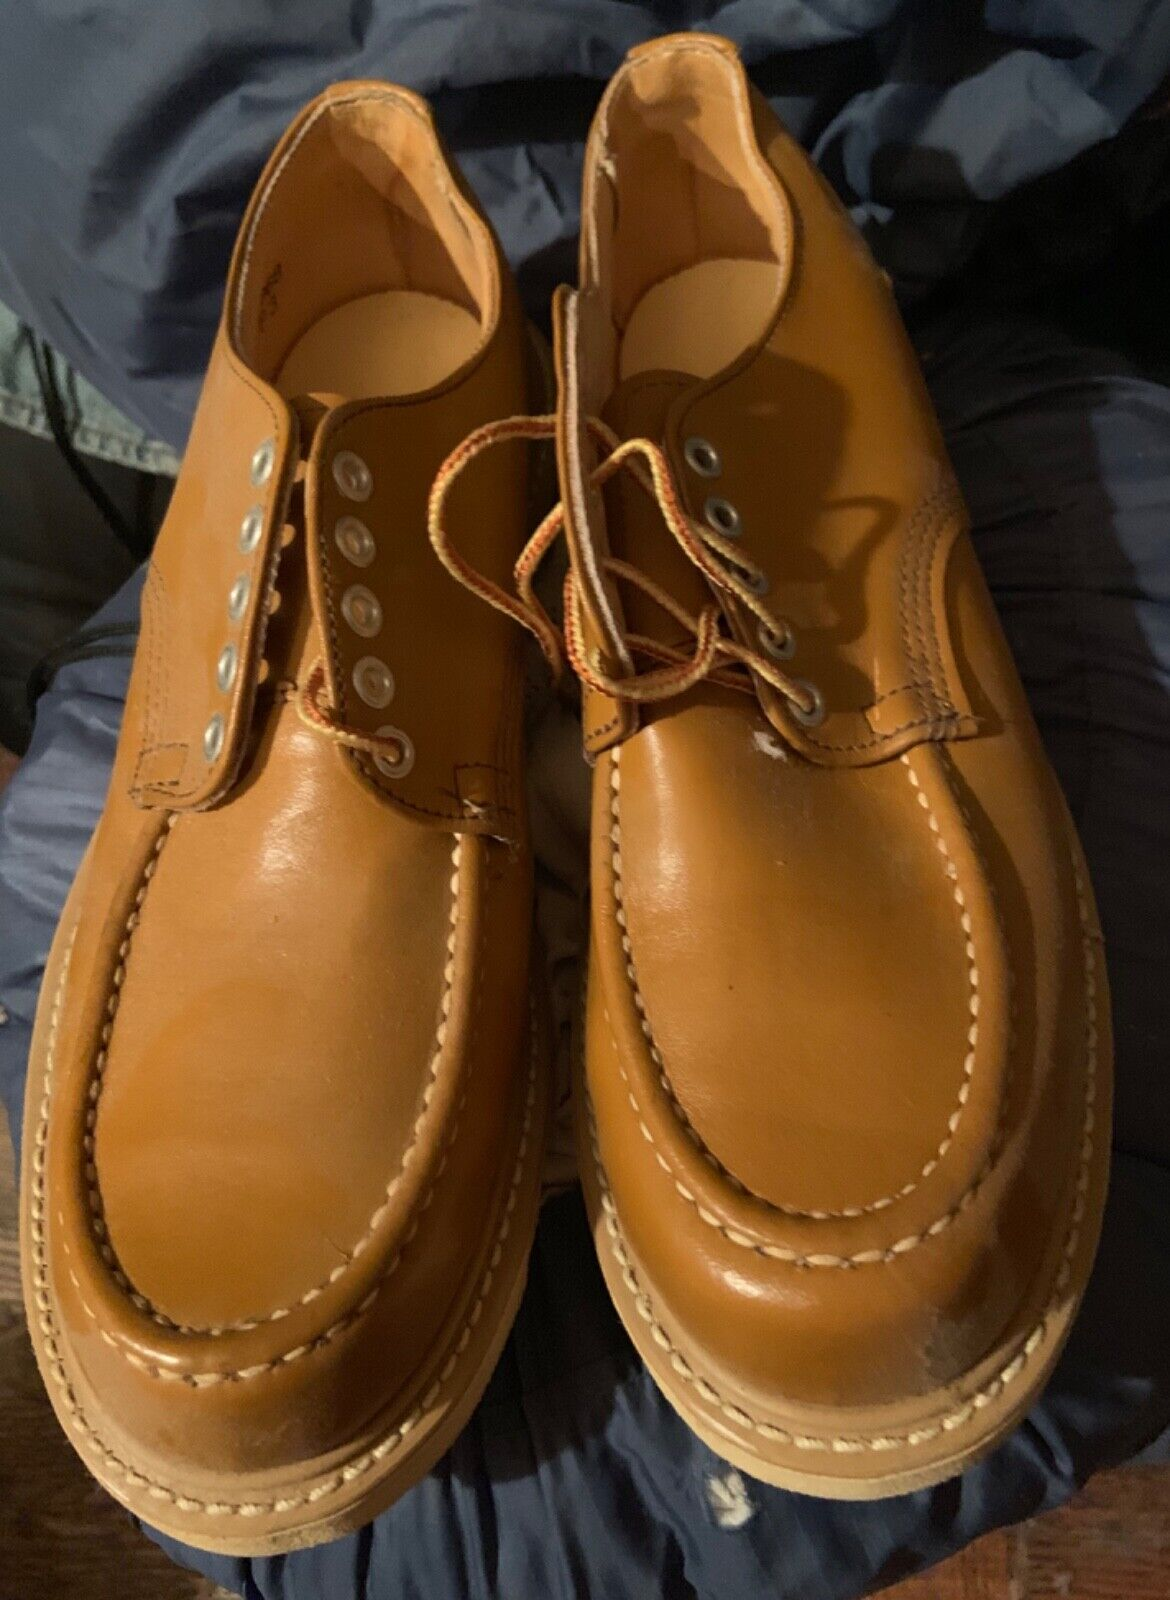 NOS GeorgiaBoot Work Boots Size 91 2